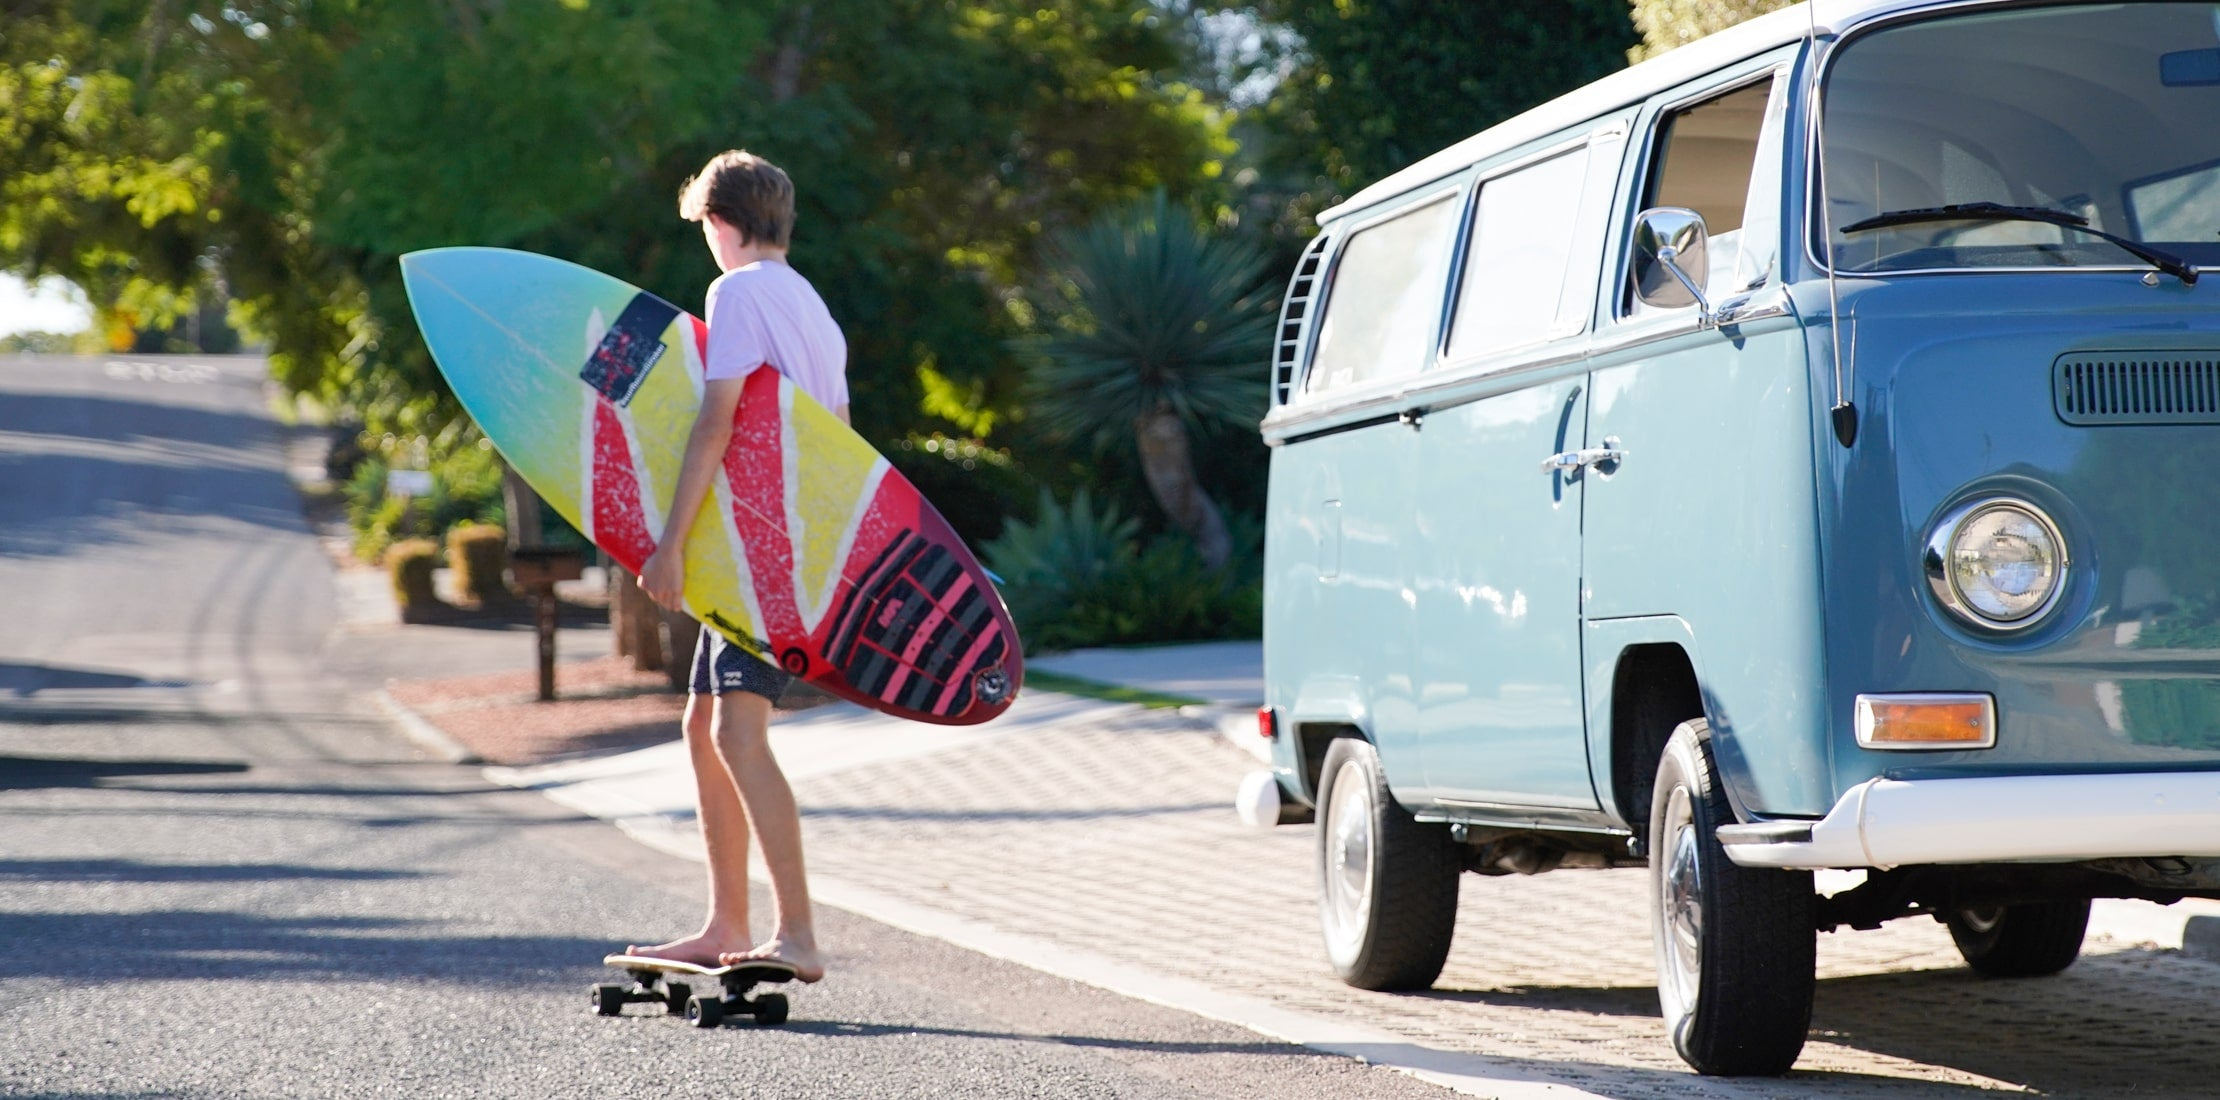 Barefoot Cruiser with Surfboard